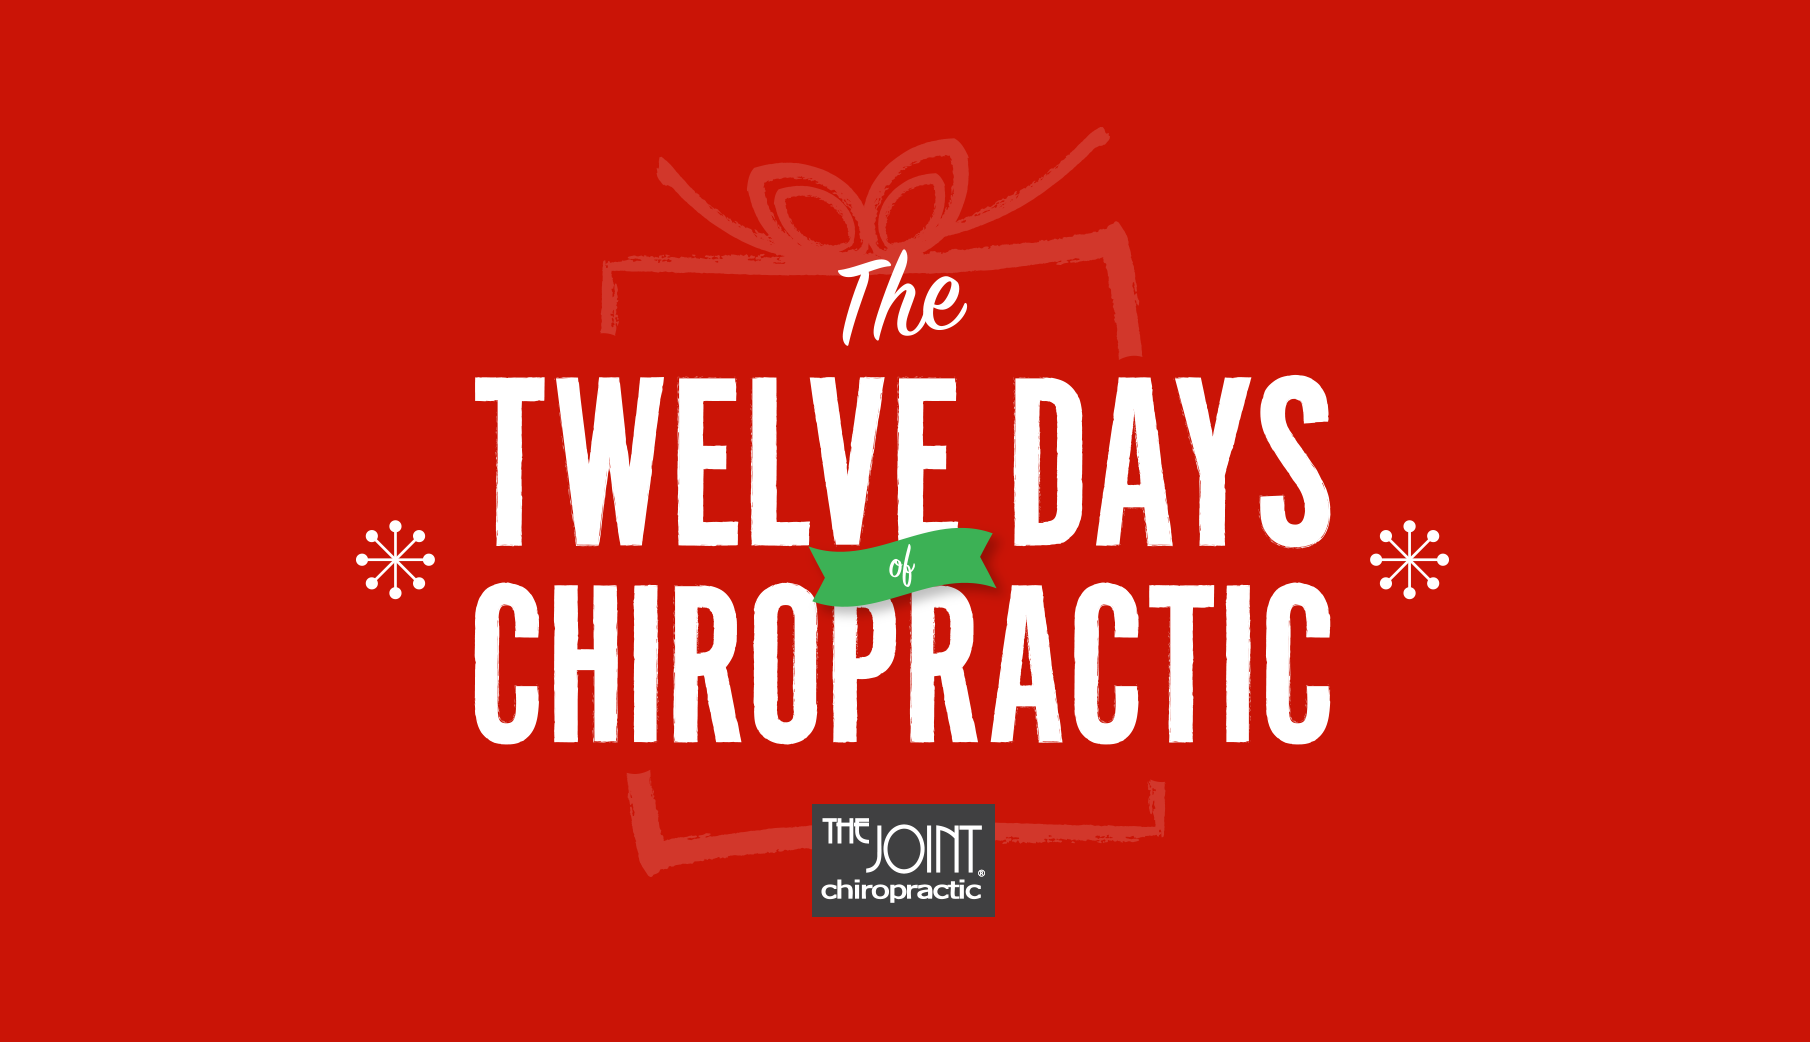 The Joint Chiropractic | The Twelve Days of Chiropractic